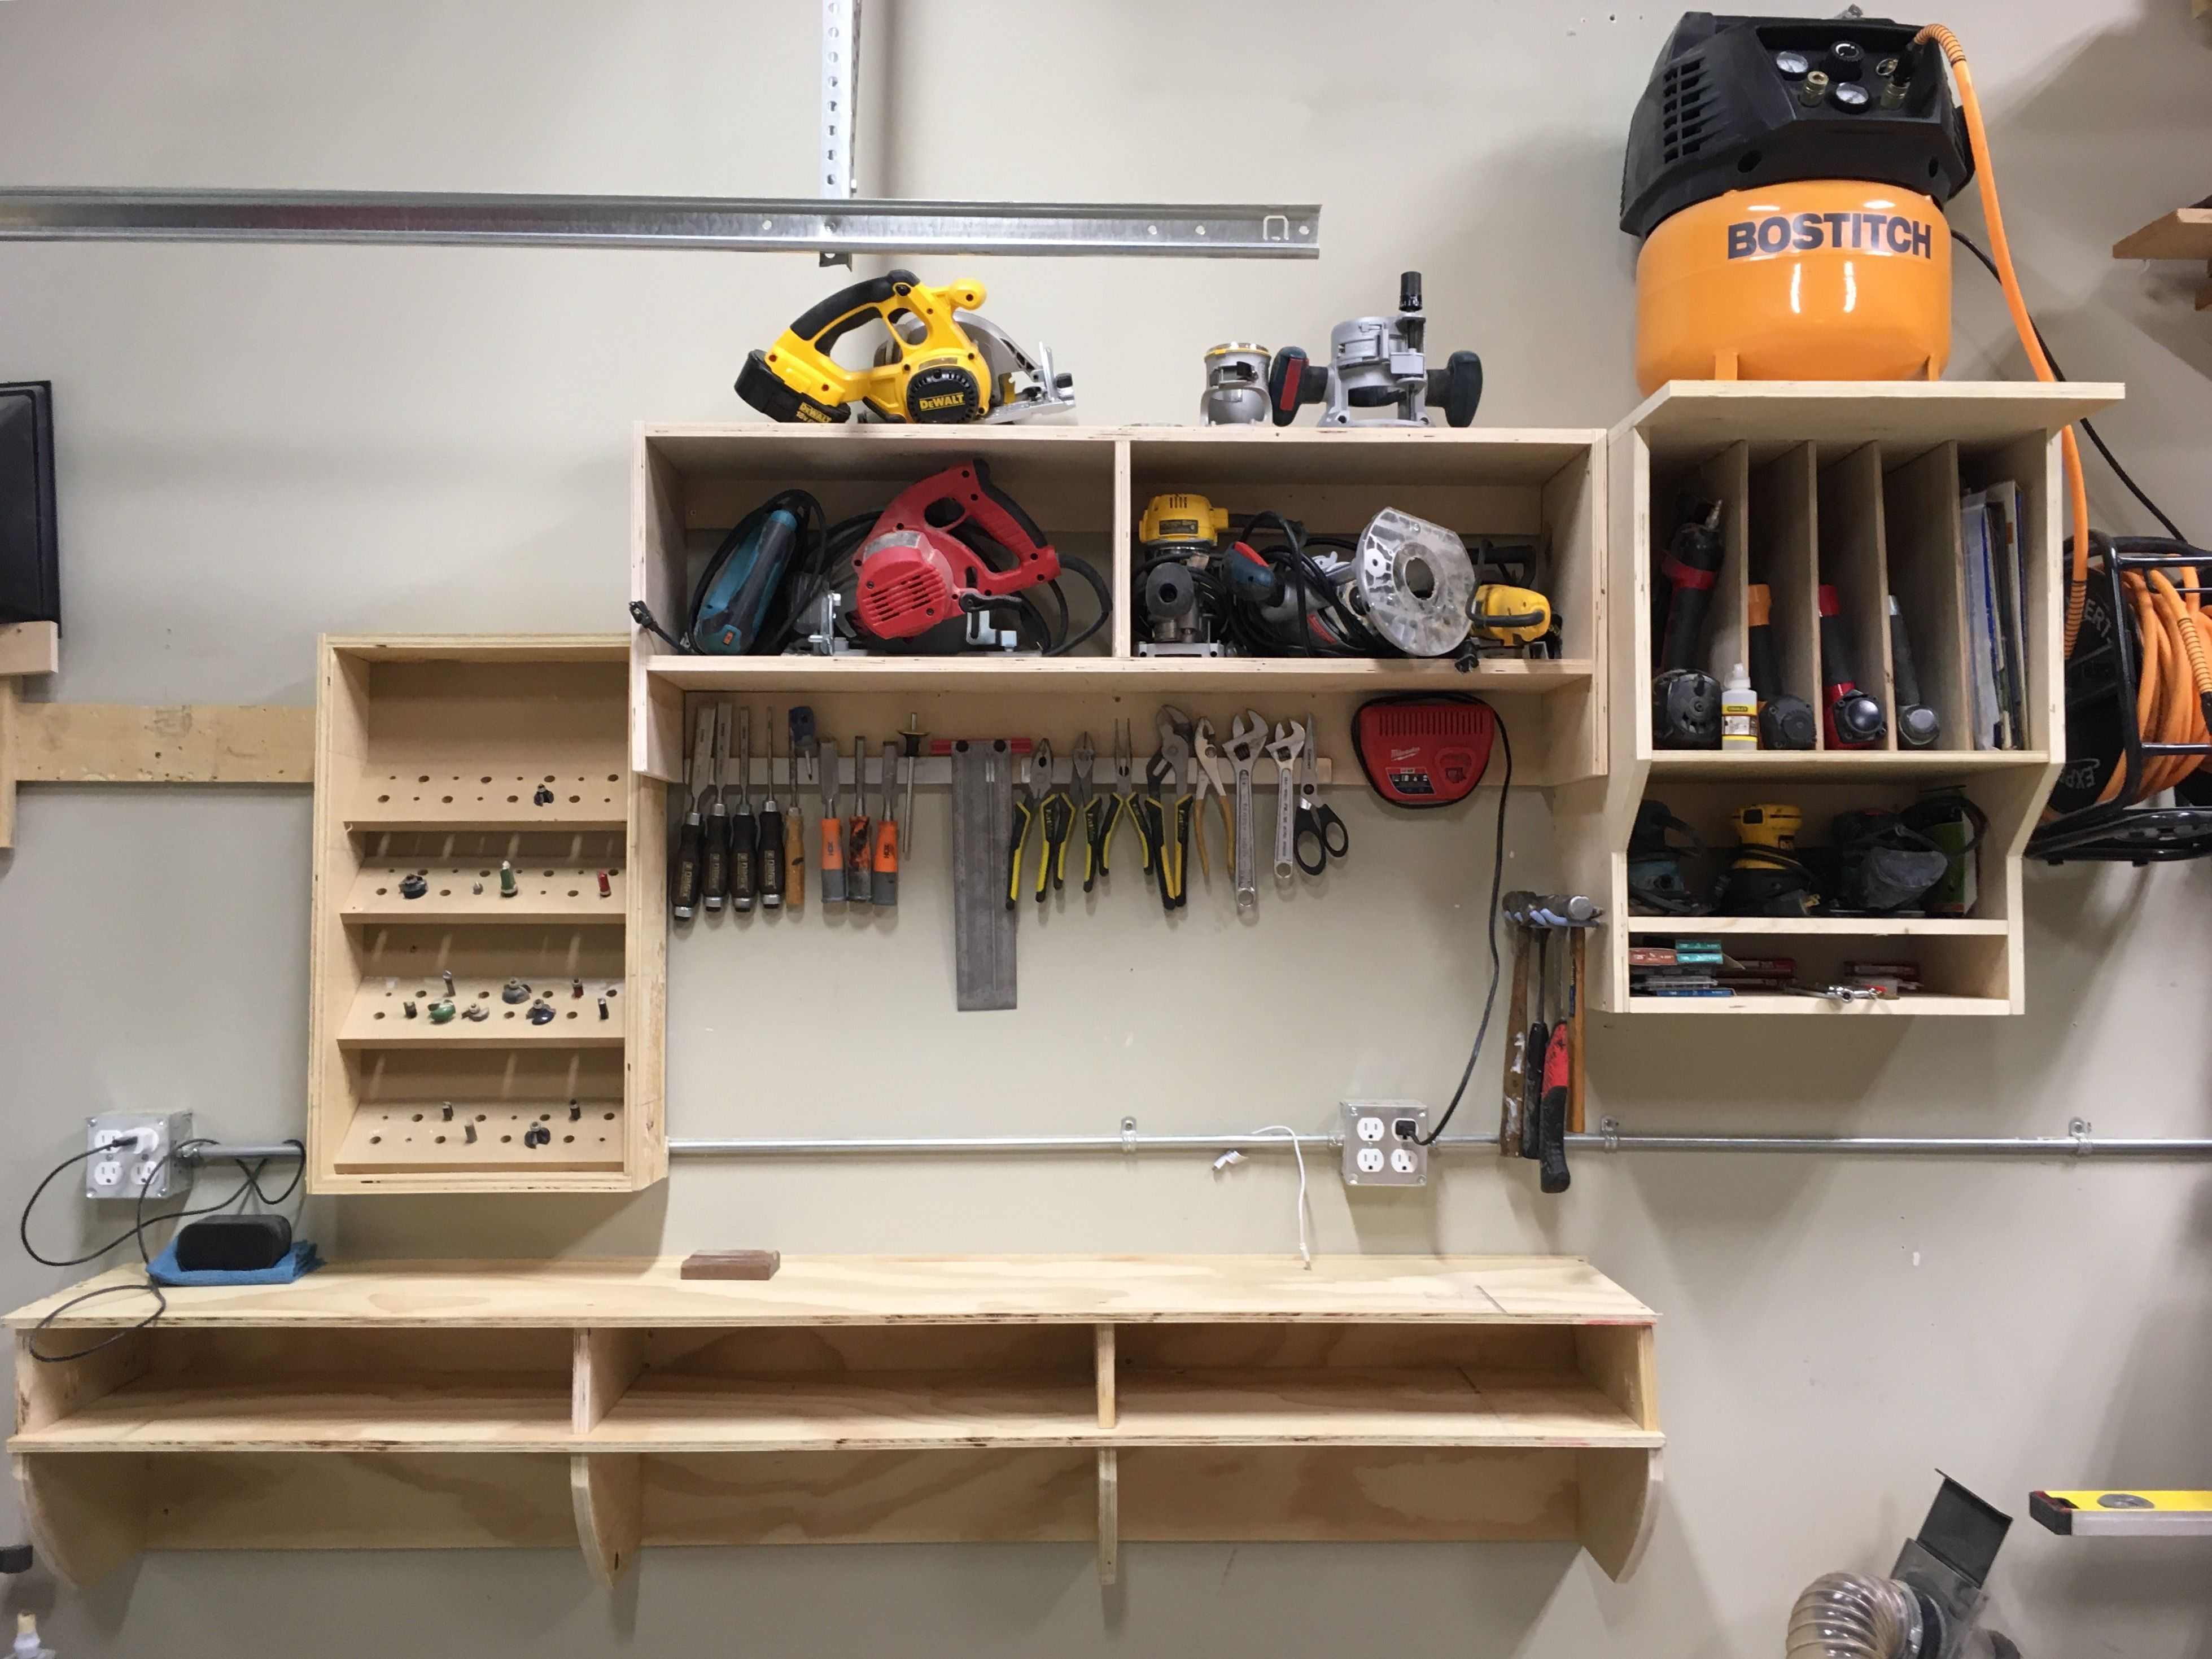 Wall mounted shop for improved organization. Open